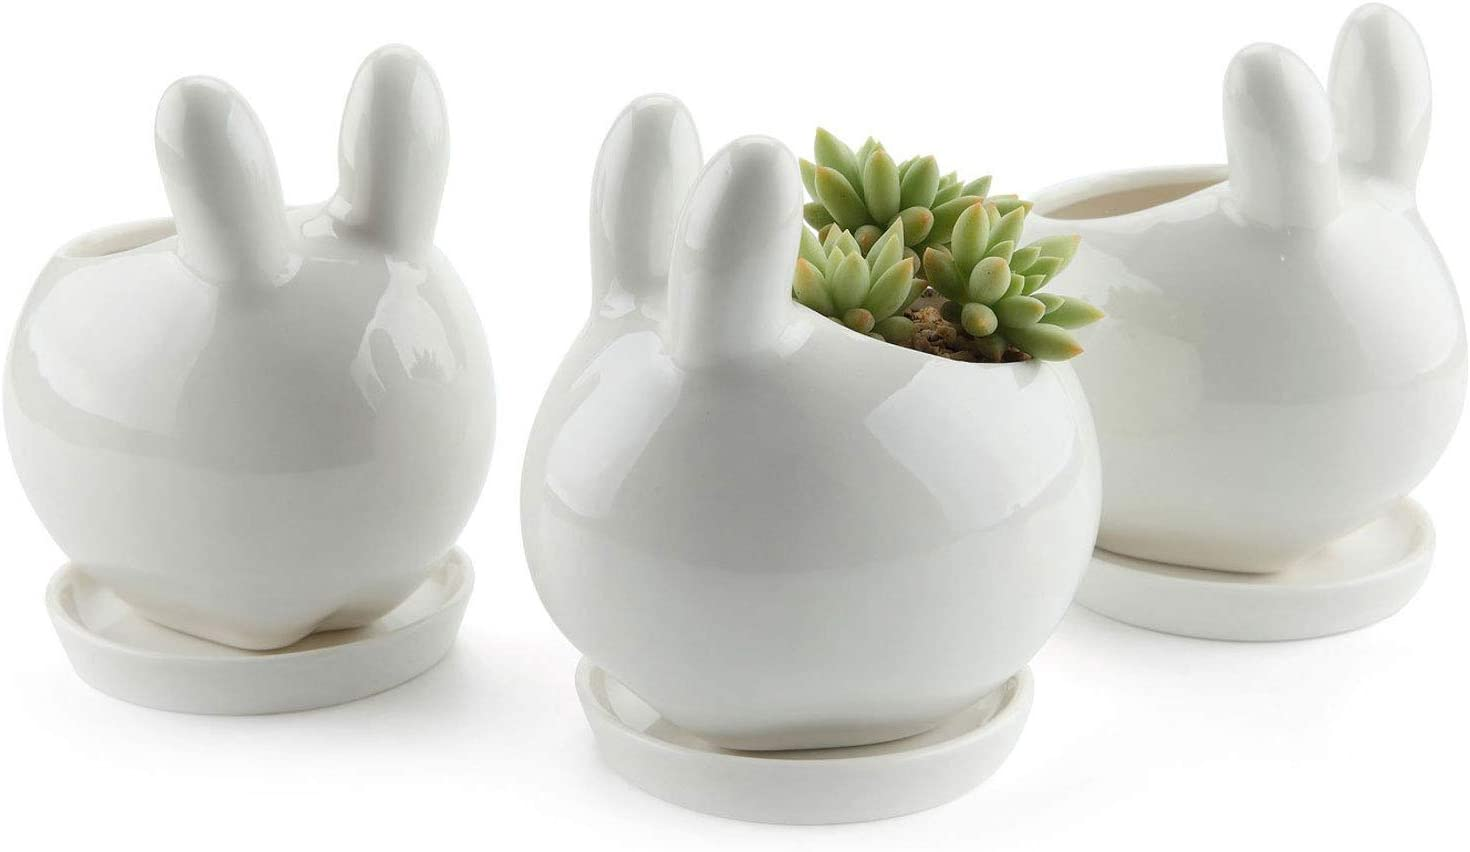 T4U Ceramic Pot White, Rabbit Planter Succulent Plant Cactus Flower Porcelain Holder Container Outdoor Indoor Home Office Decoration with Round Tray – Pack of 3